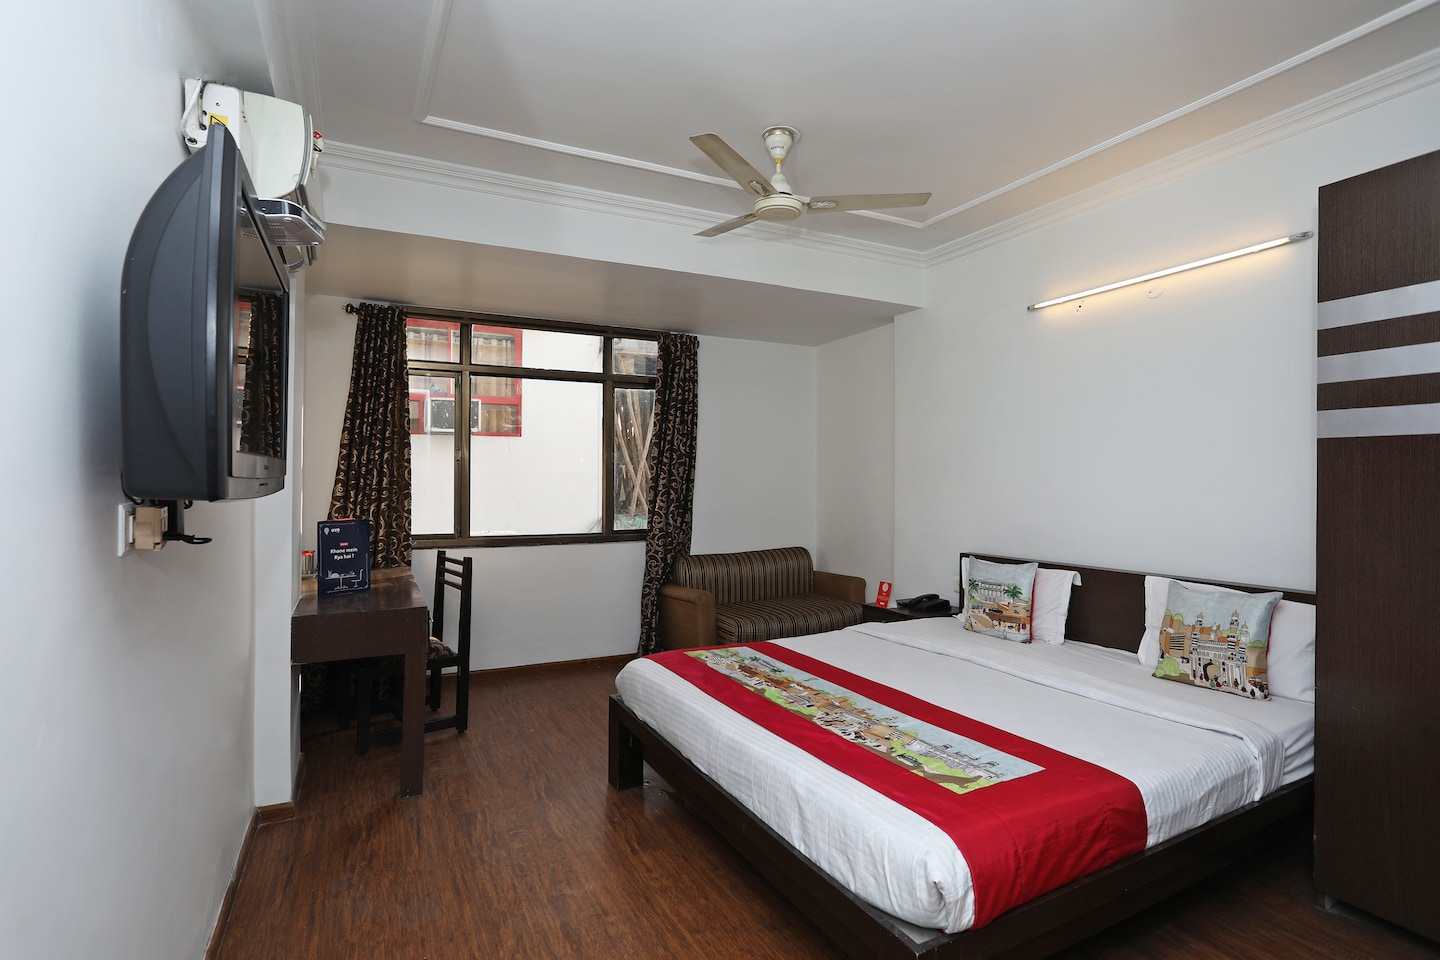 OYO 1714 Hotel RnB City Center Room-1